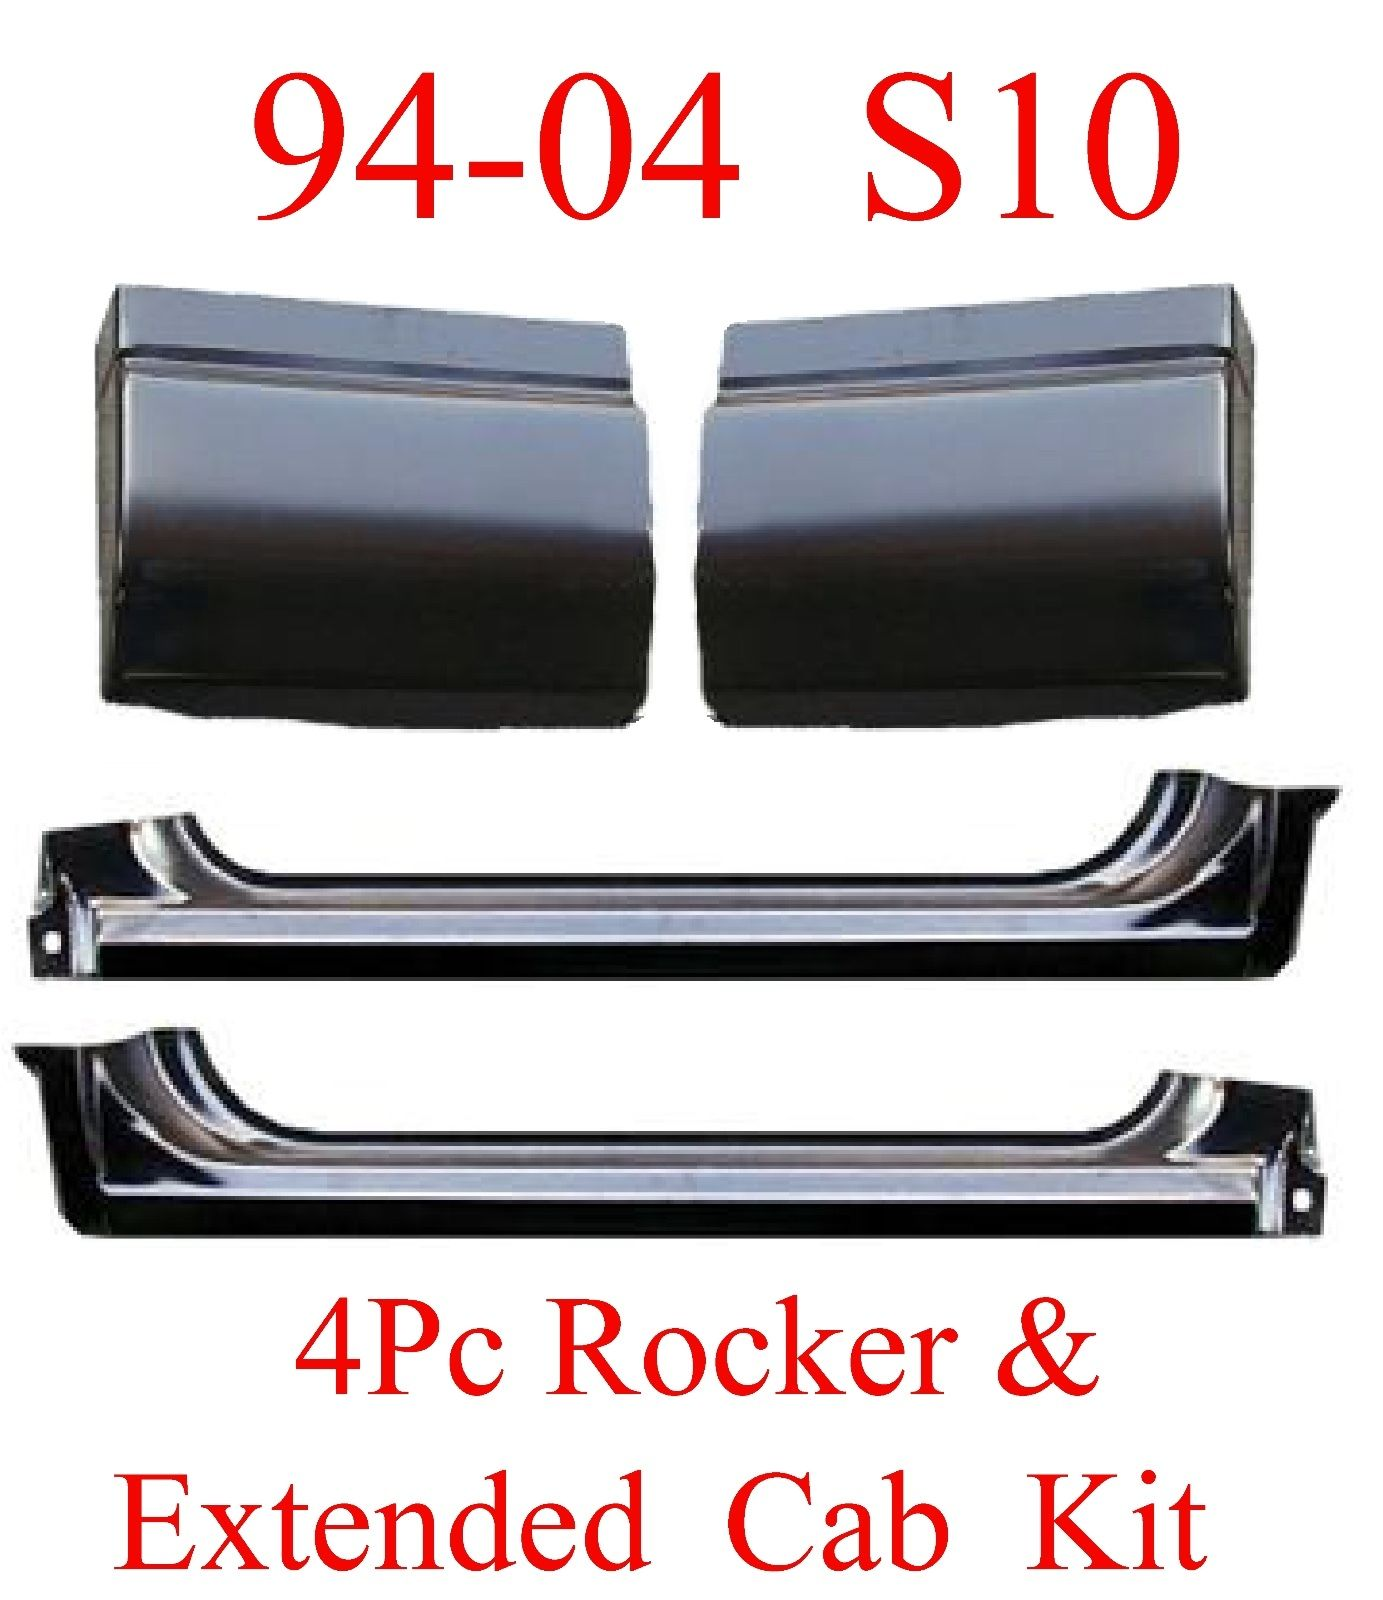 94-04 Chevy S10 4Pc Extended Cab & Rocker Kit